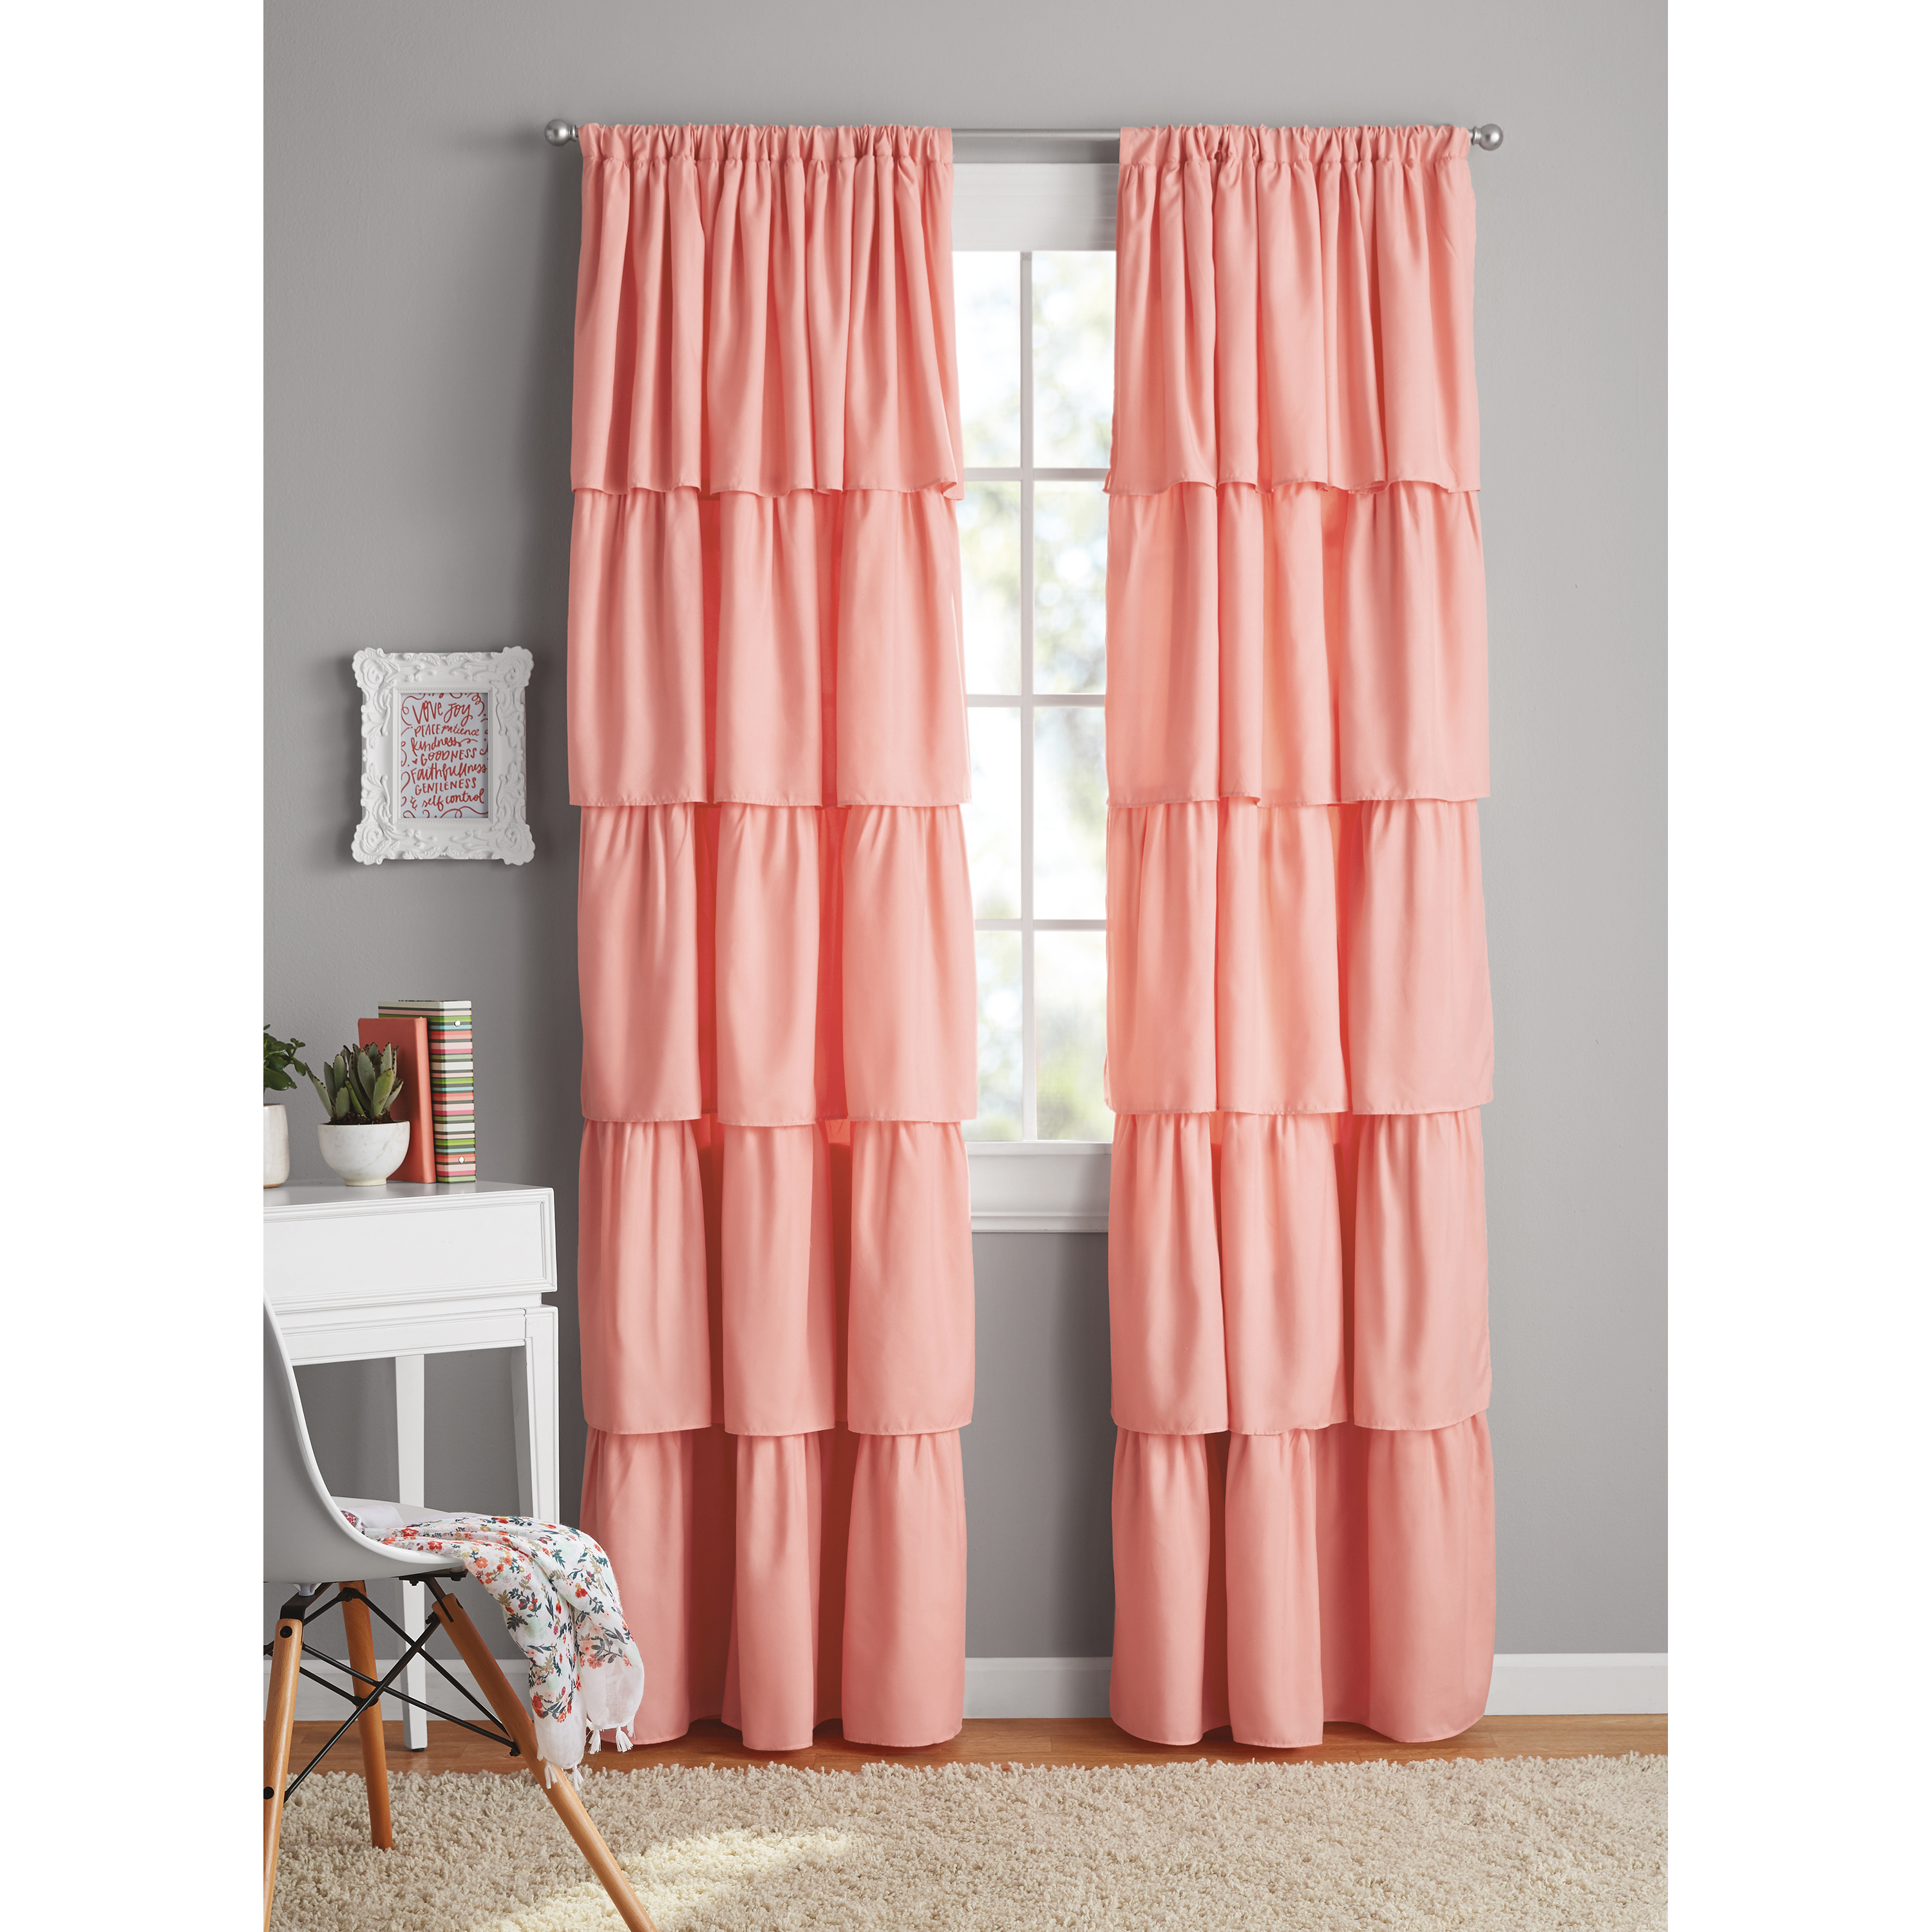 Your Zone Ruffle Girls Bedroom Curtain by Your Zone